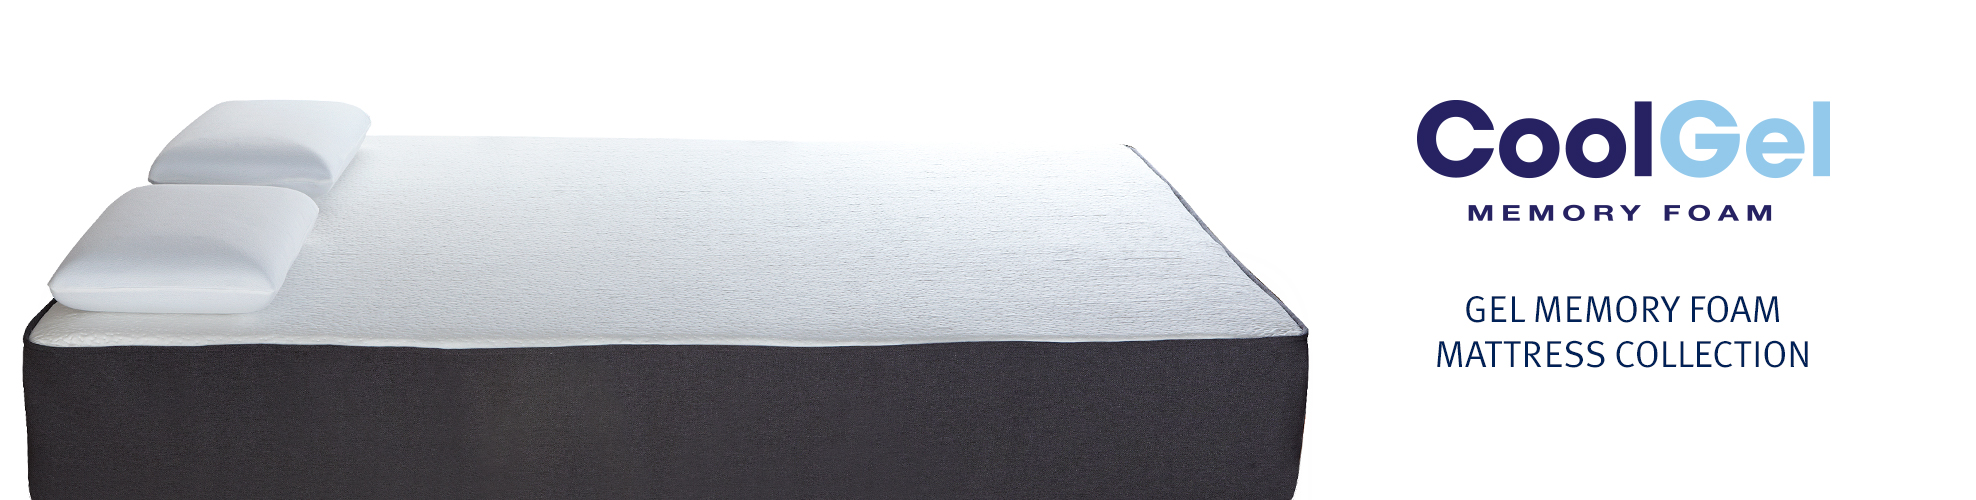 Classic Brands Mattresses Bedding Accessories Leather  : BannerTopv31072x798 from www.classicmattress.com size 1976 x 500 jpeg 490kB